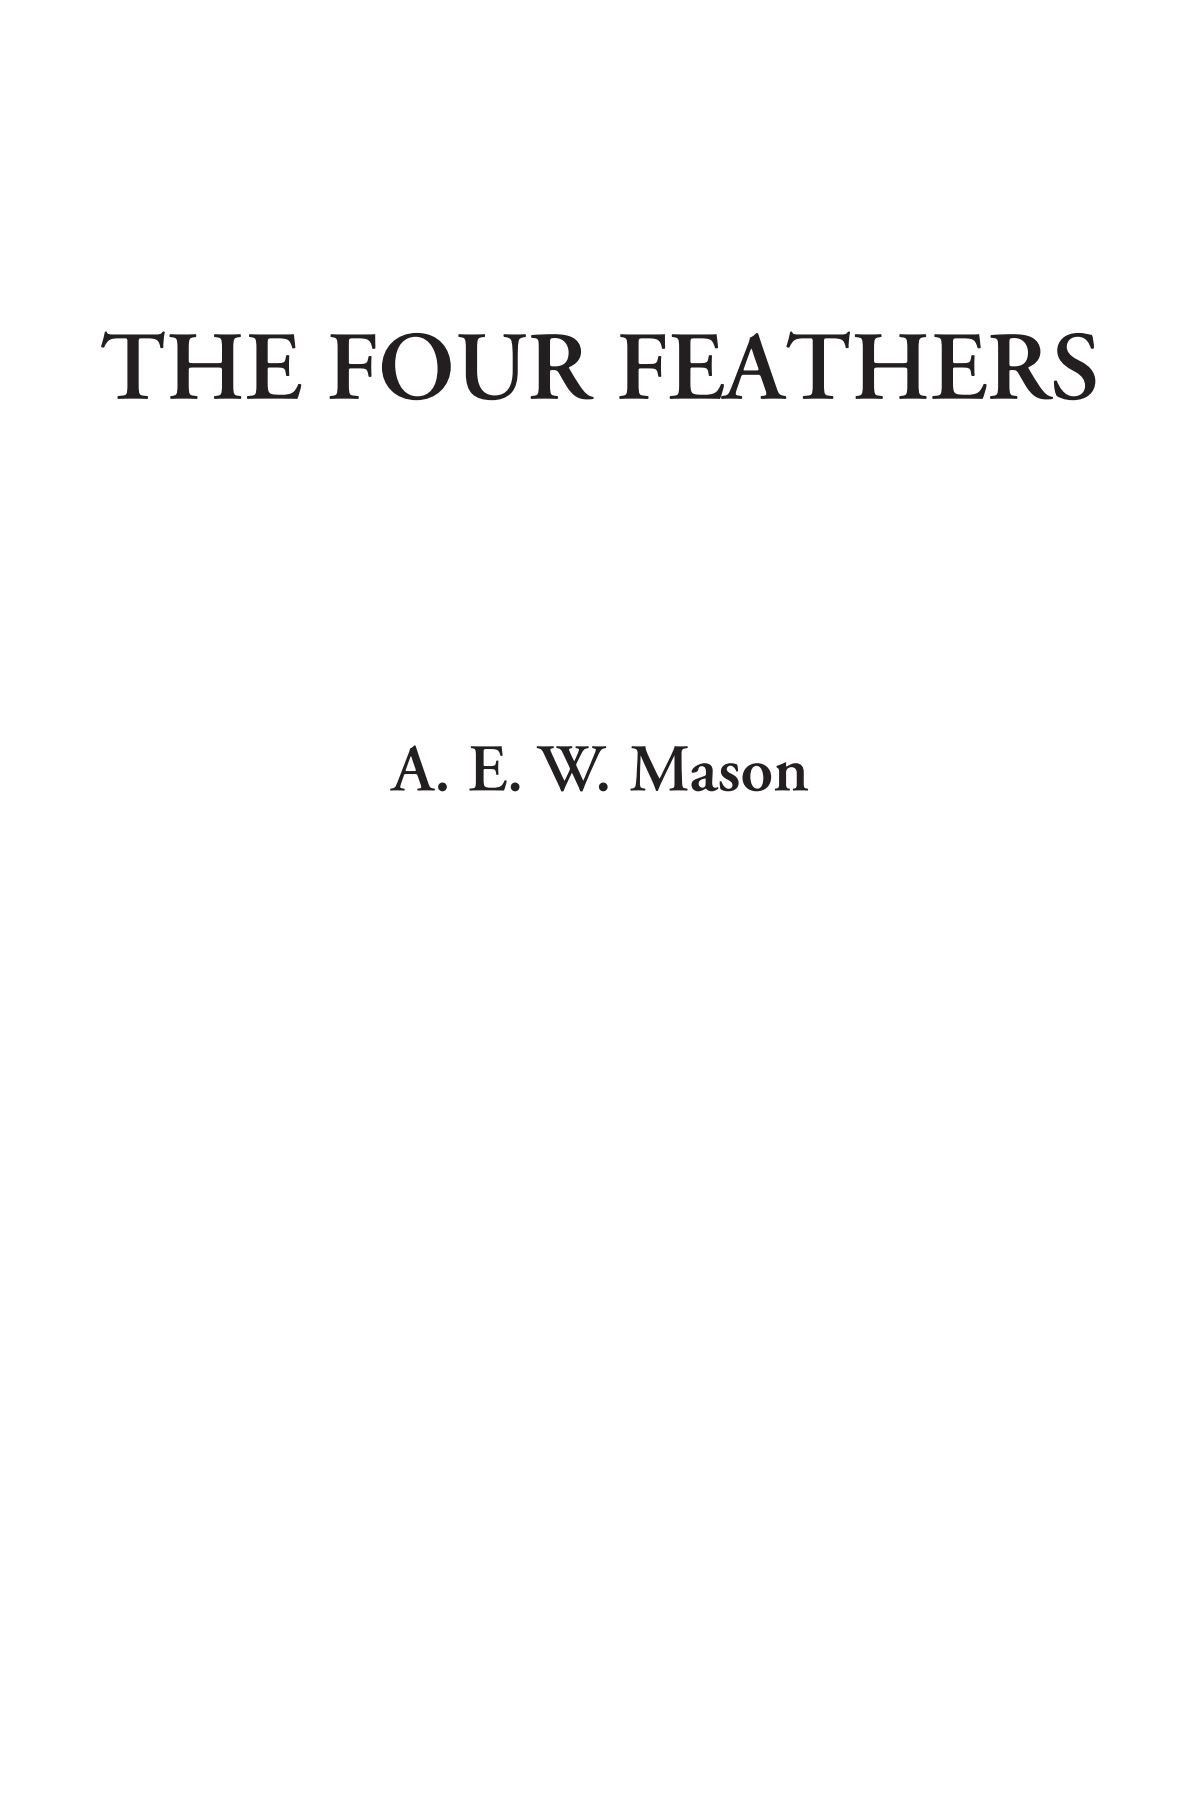 Download The Four Feathers pdf